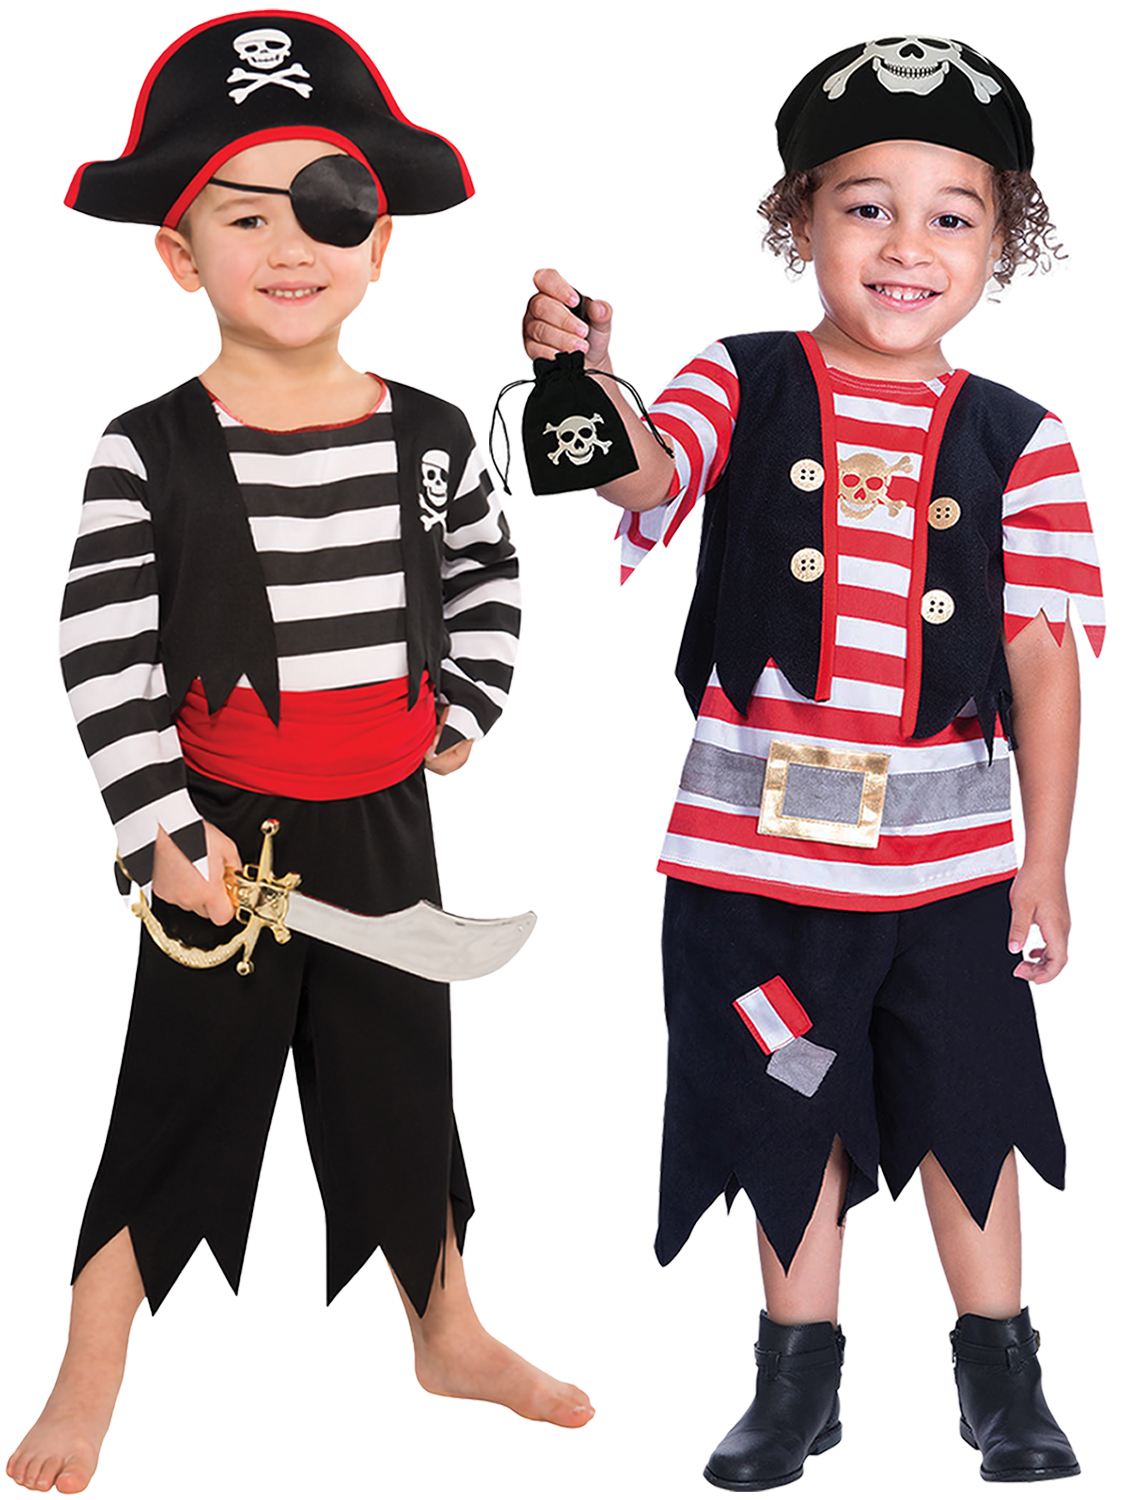 Image result for images of little kids dressed up as pirates